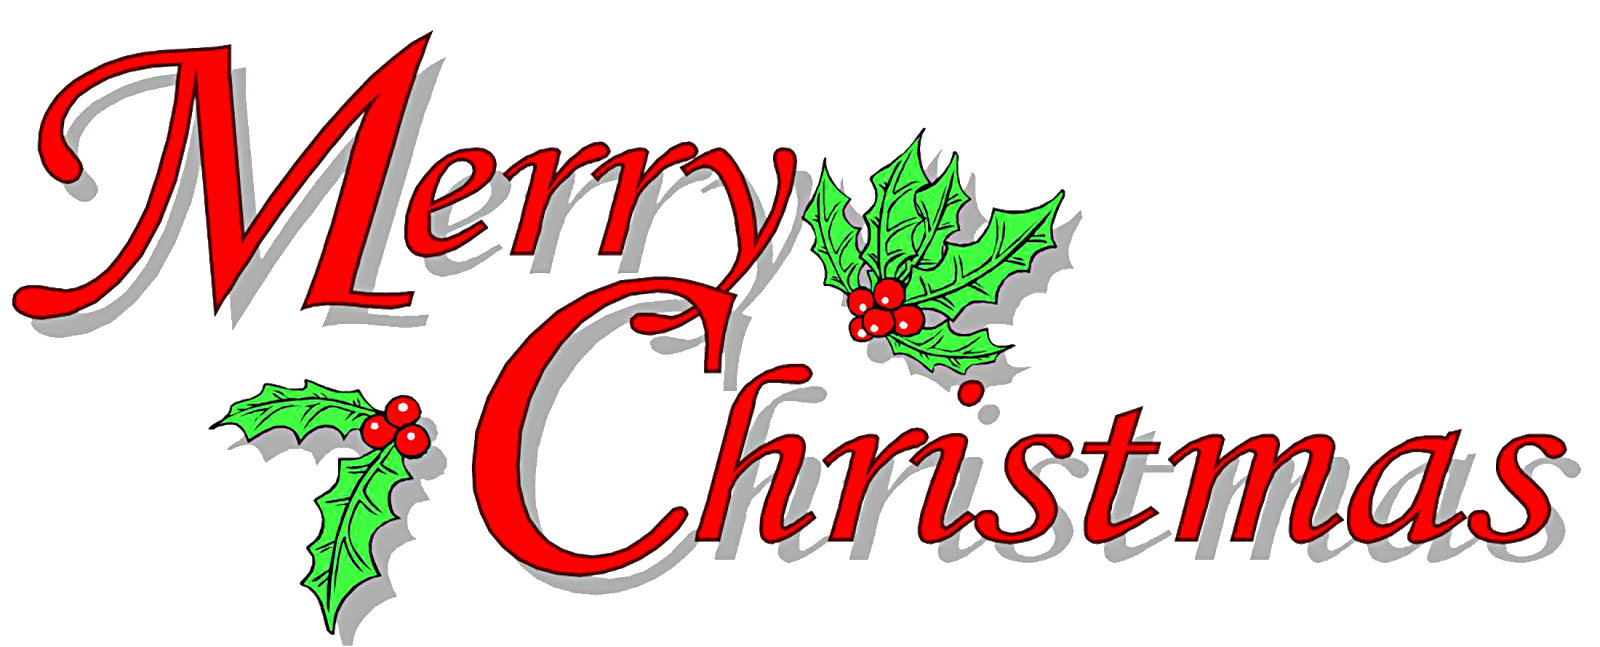 Merry christmas religious clipart jpg library stock Free christmas message clipart - ClipartFest jpg library stock